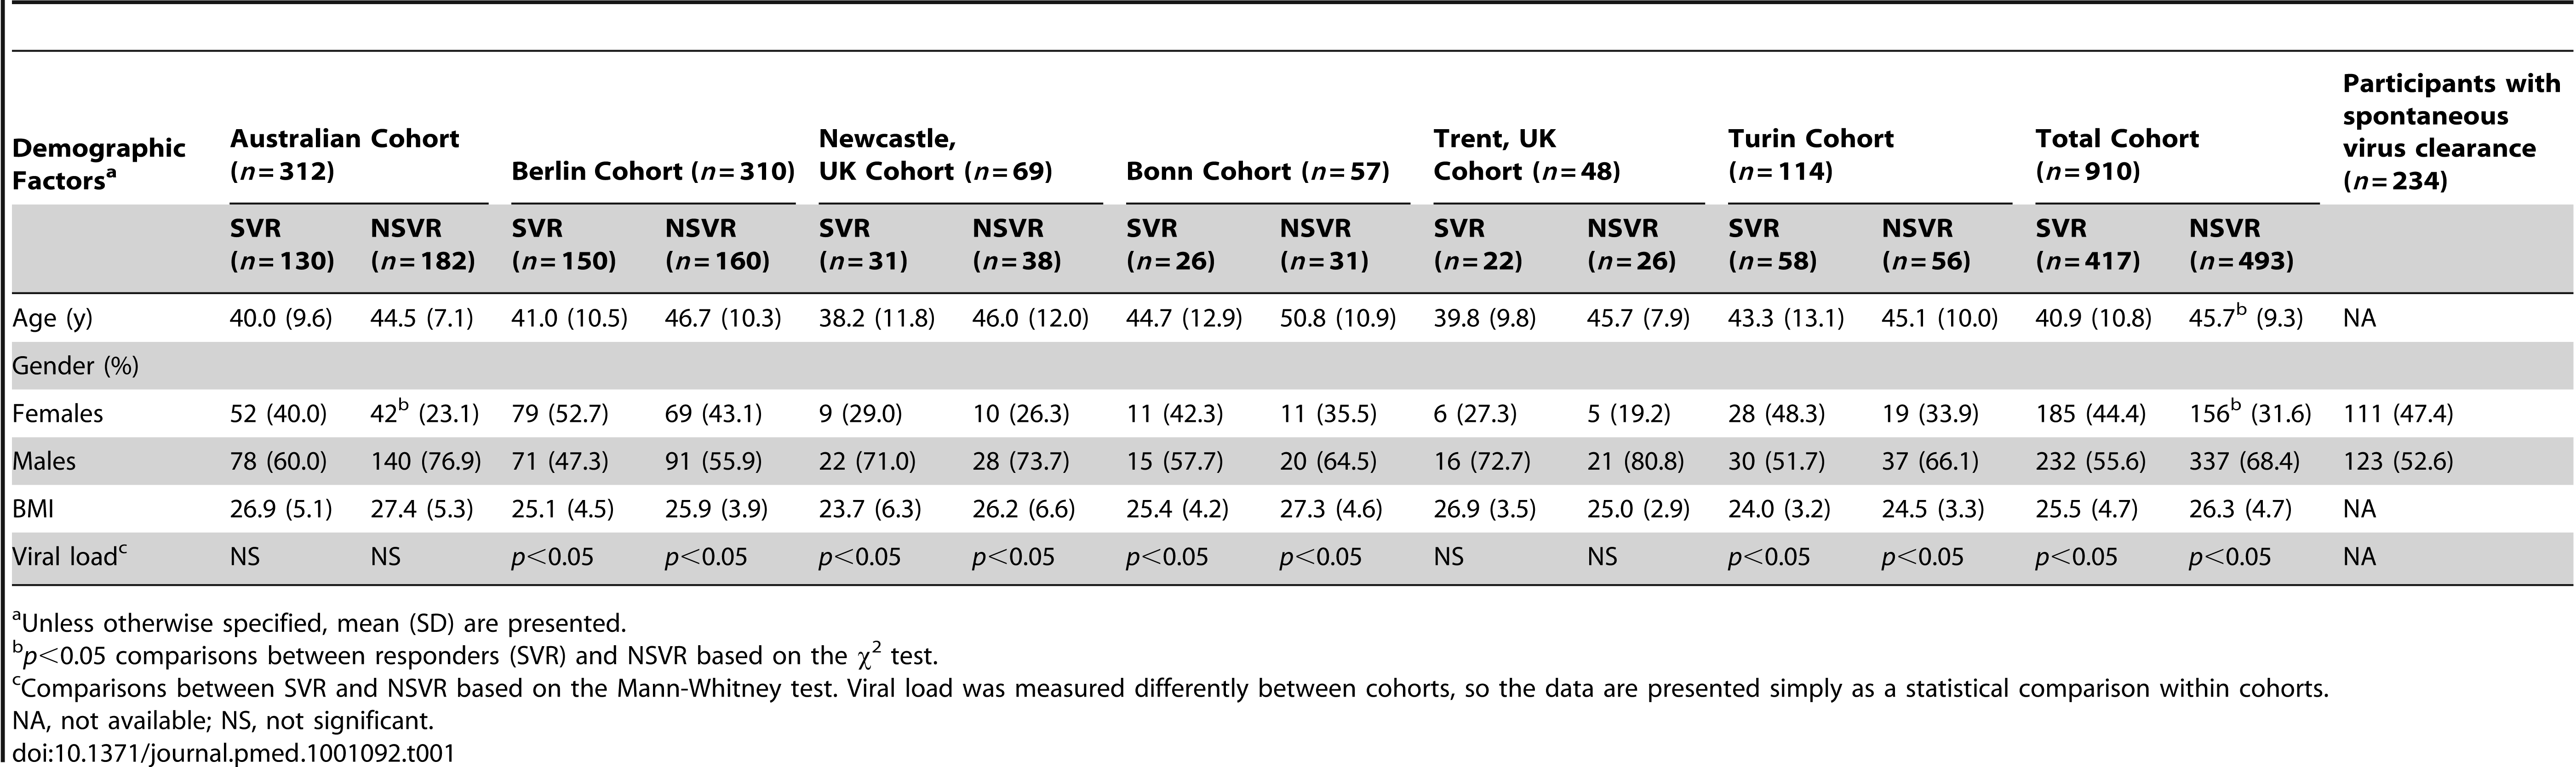 Demographic characteristics for chronic hepatitis C patients after therapy, and for those participants with spontaneous virus clearance of HCV included in this study.